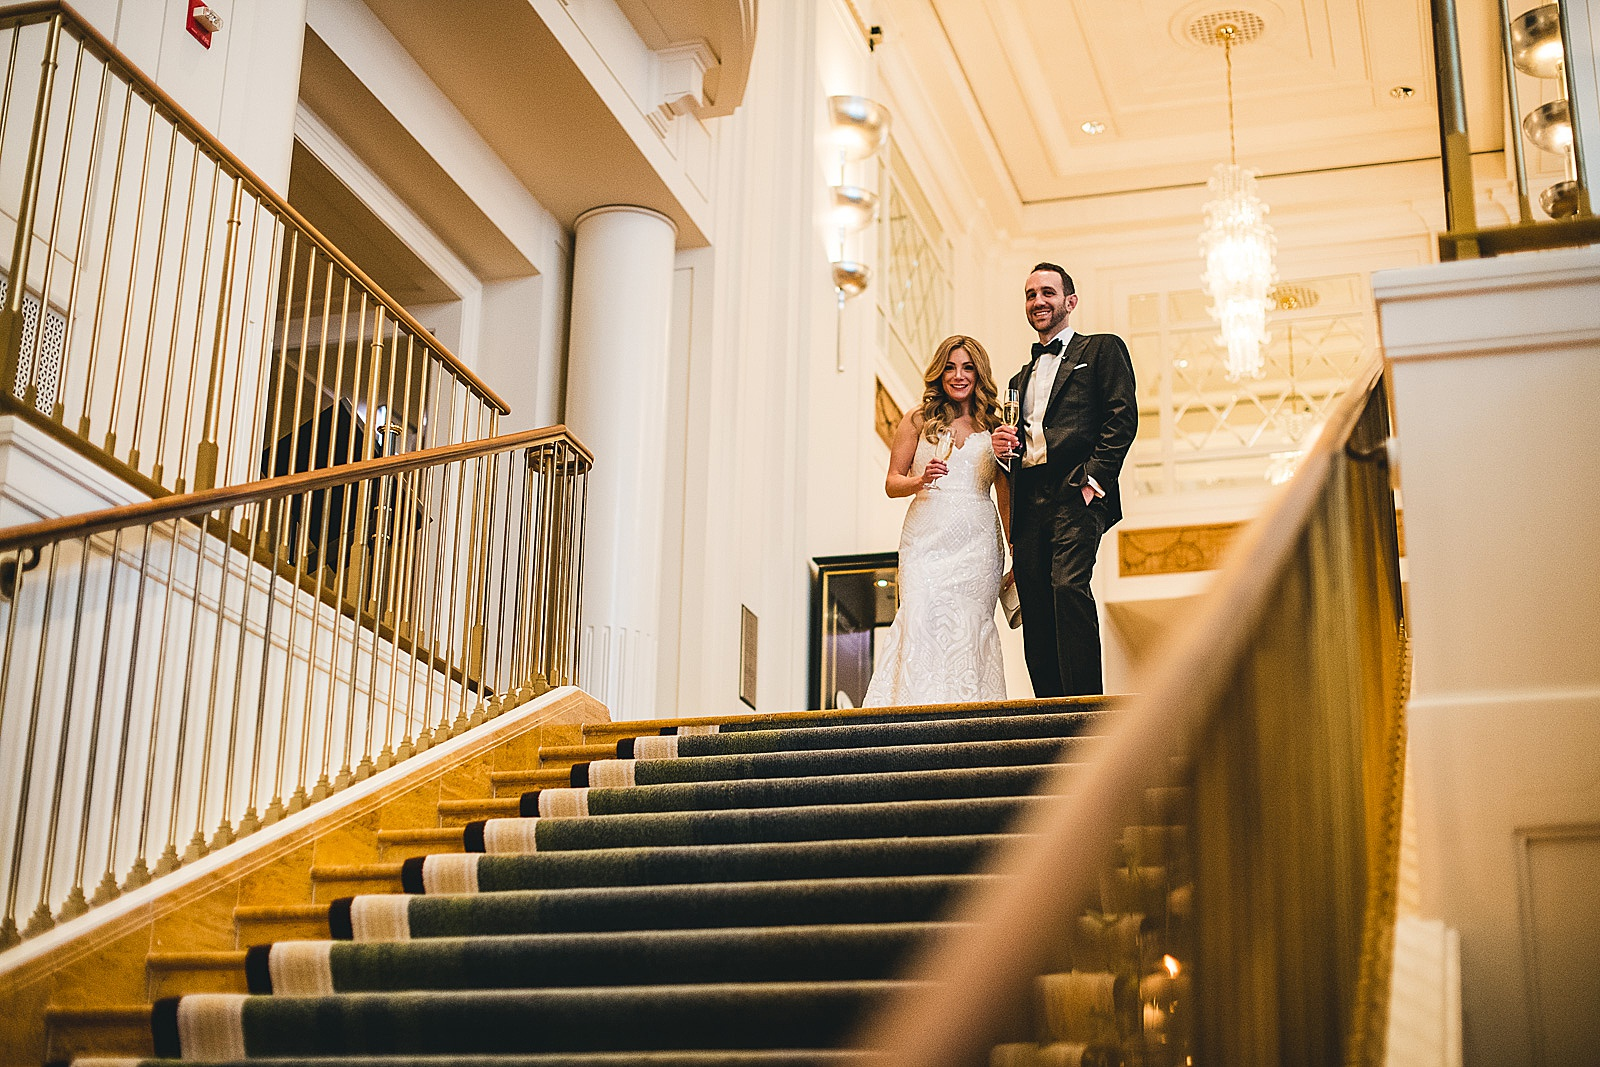 44 bride and groom looking down the stairs - Susie + Eric's Jewish Wedding at the Peninsula Hotel in Chicago